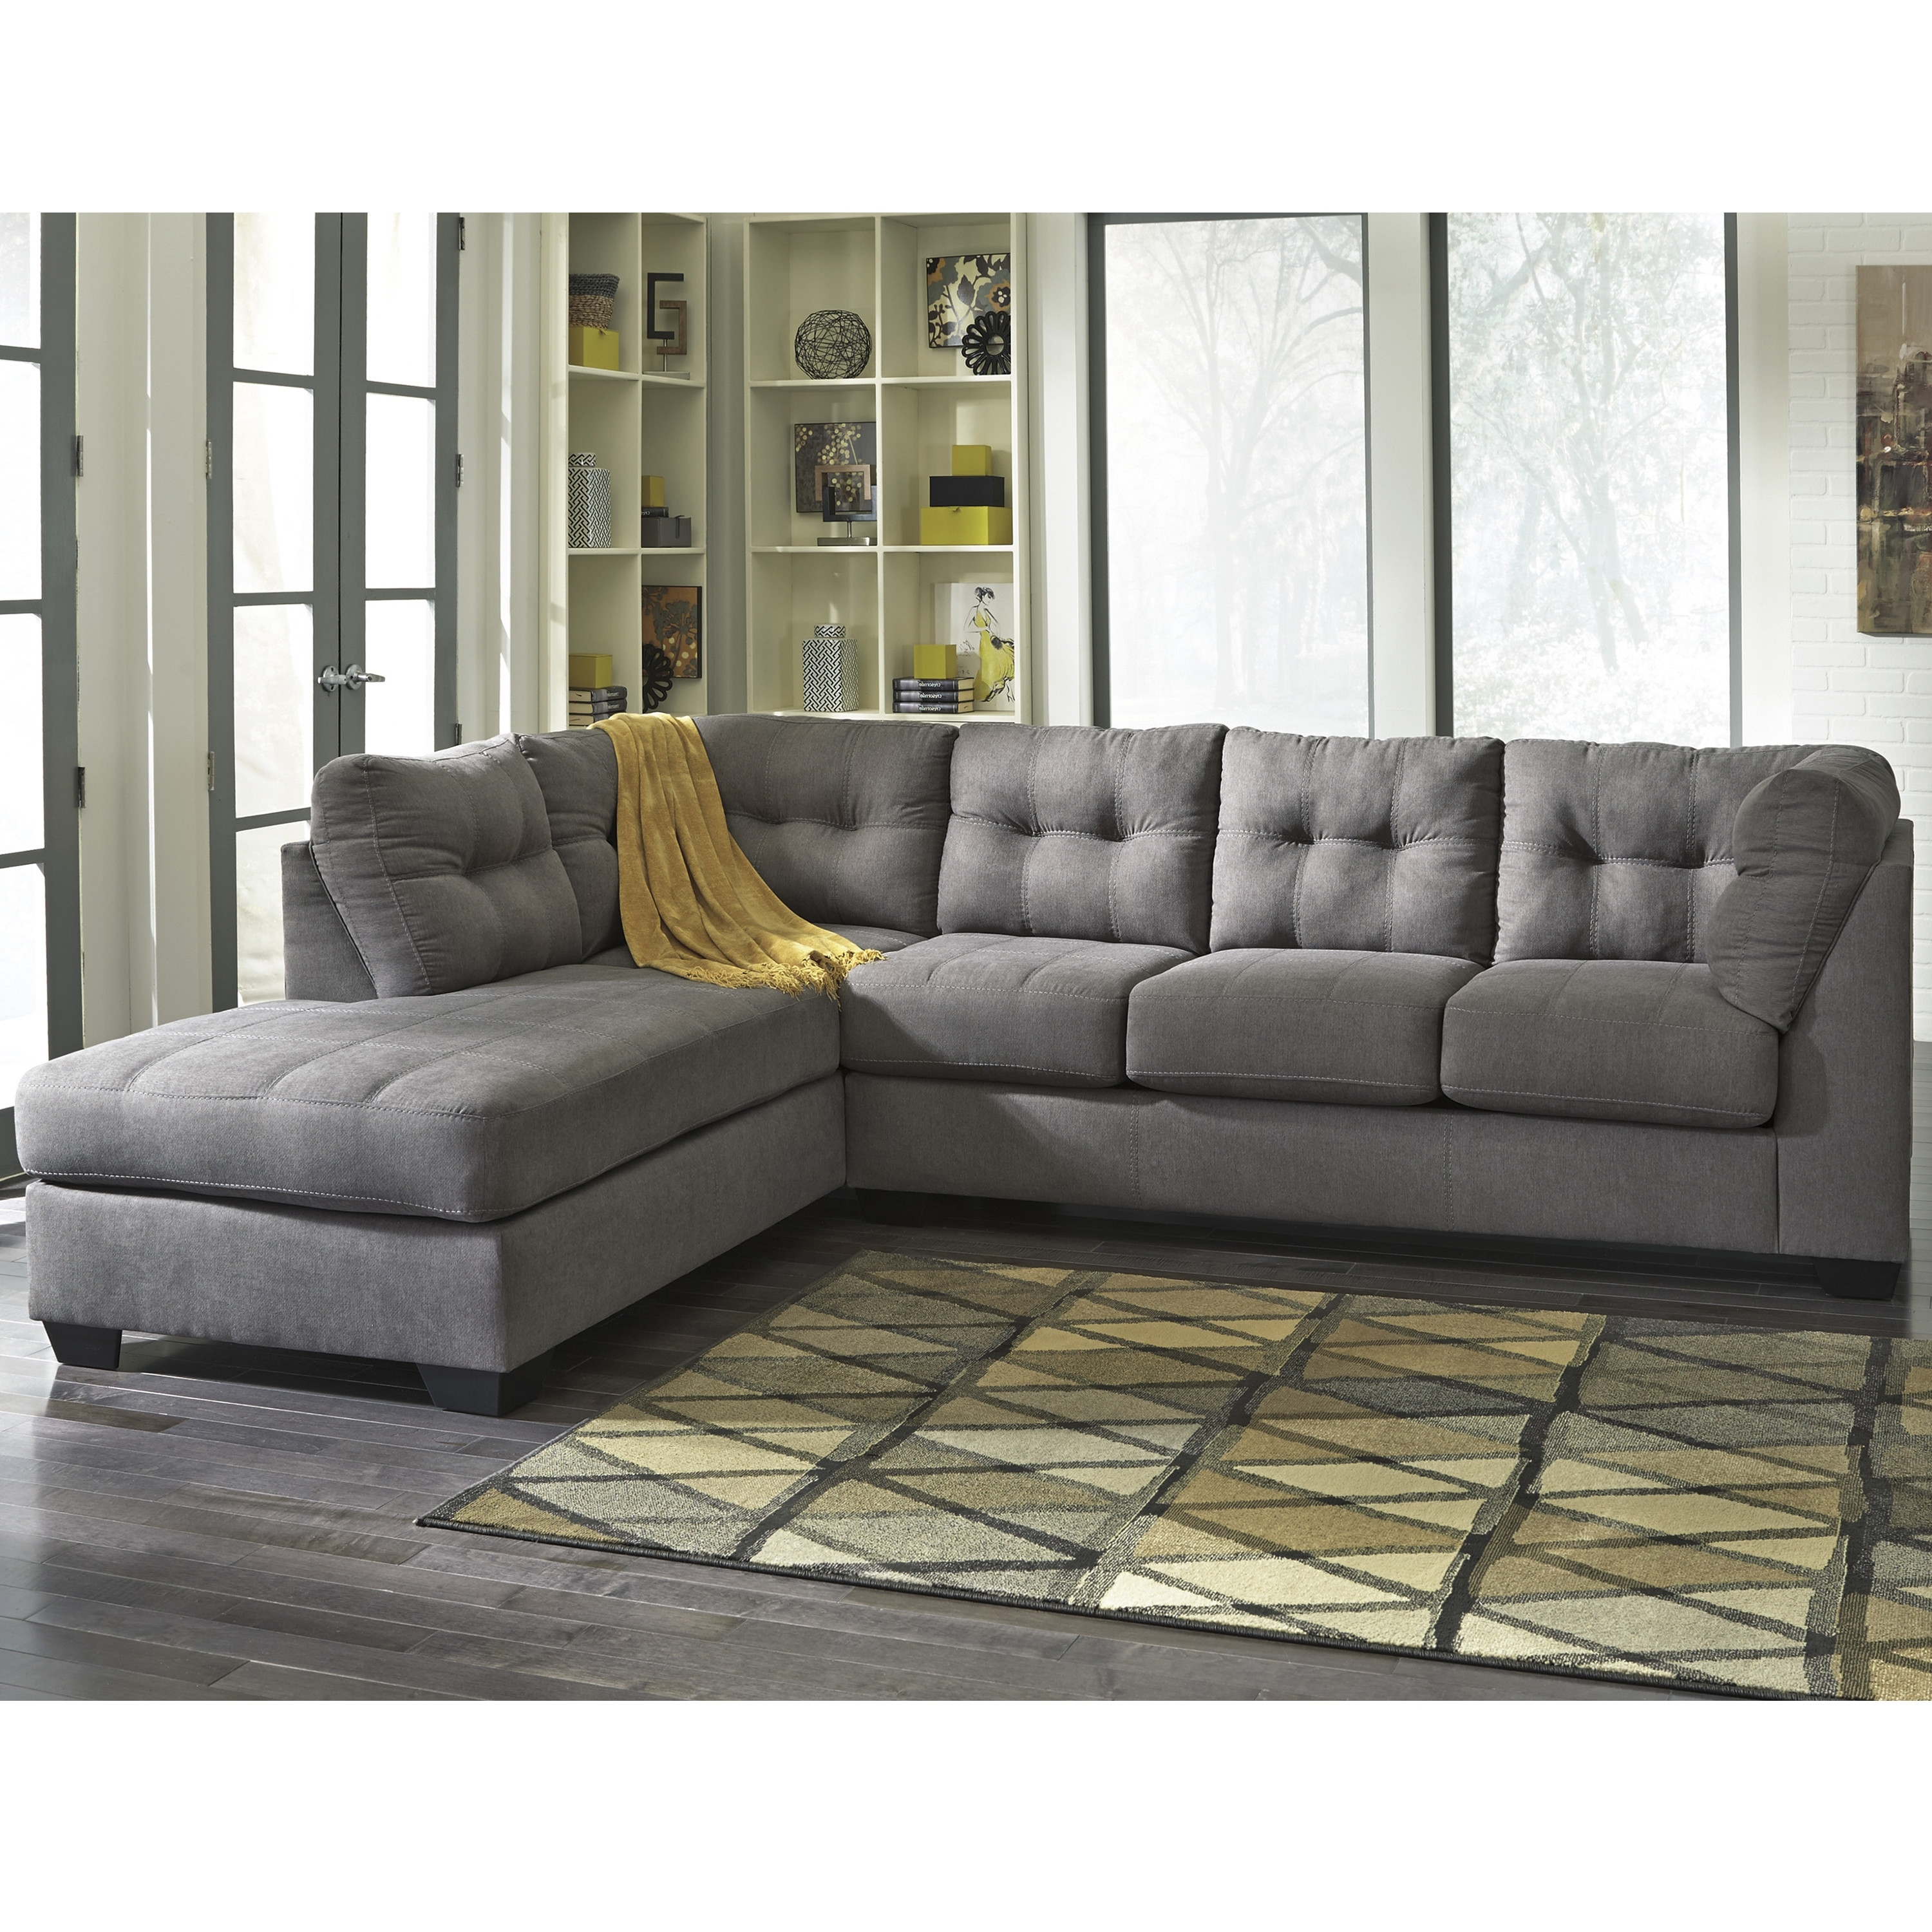 Furniture: Cool Cheap Sectional For Elegant Living Room Design Throughout Lucy Dark Grey 2 Piece Sleeper Sectionals With Raf Chaise (Image 7 of 25)